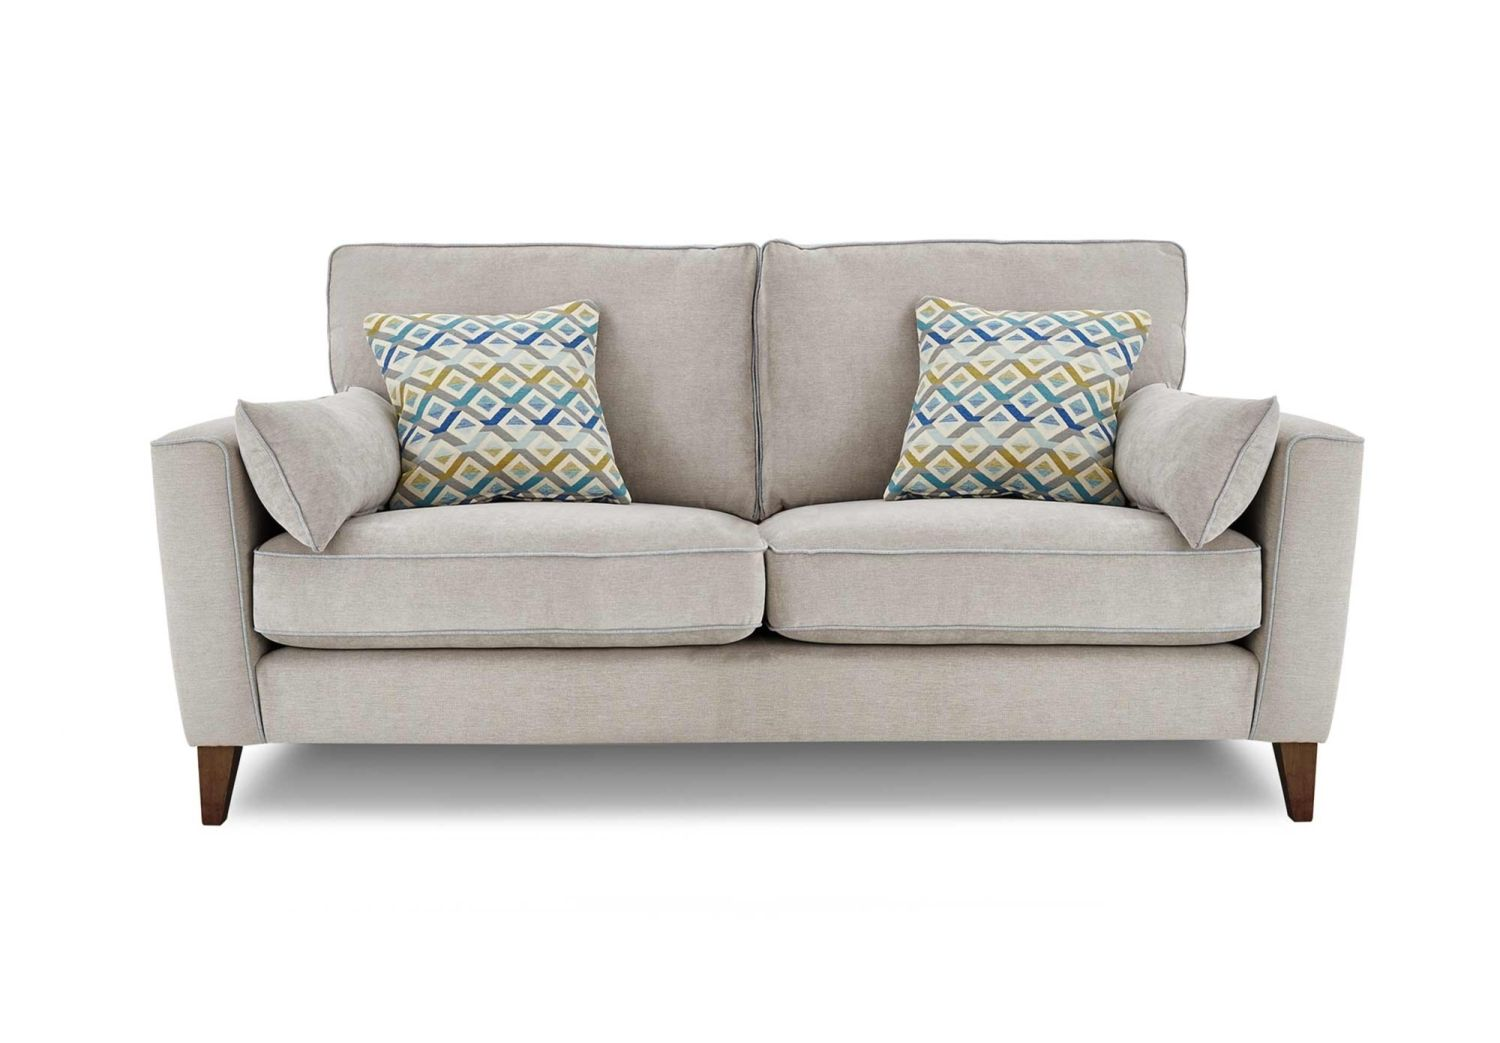 two seater sofa a space saving piece of furniture to add charm and rh pinterest com